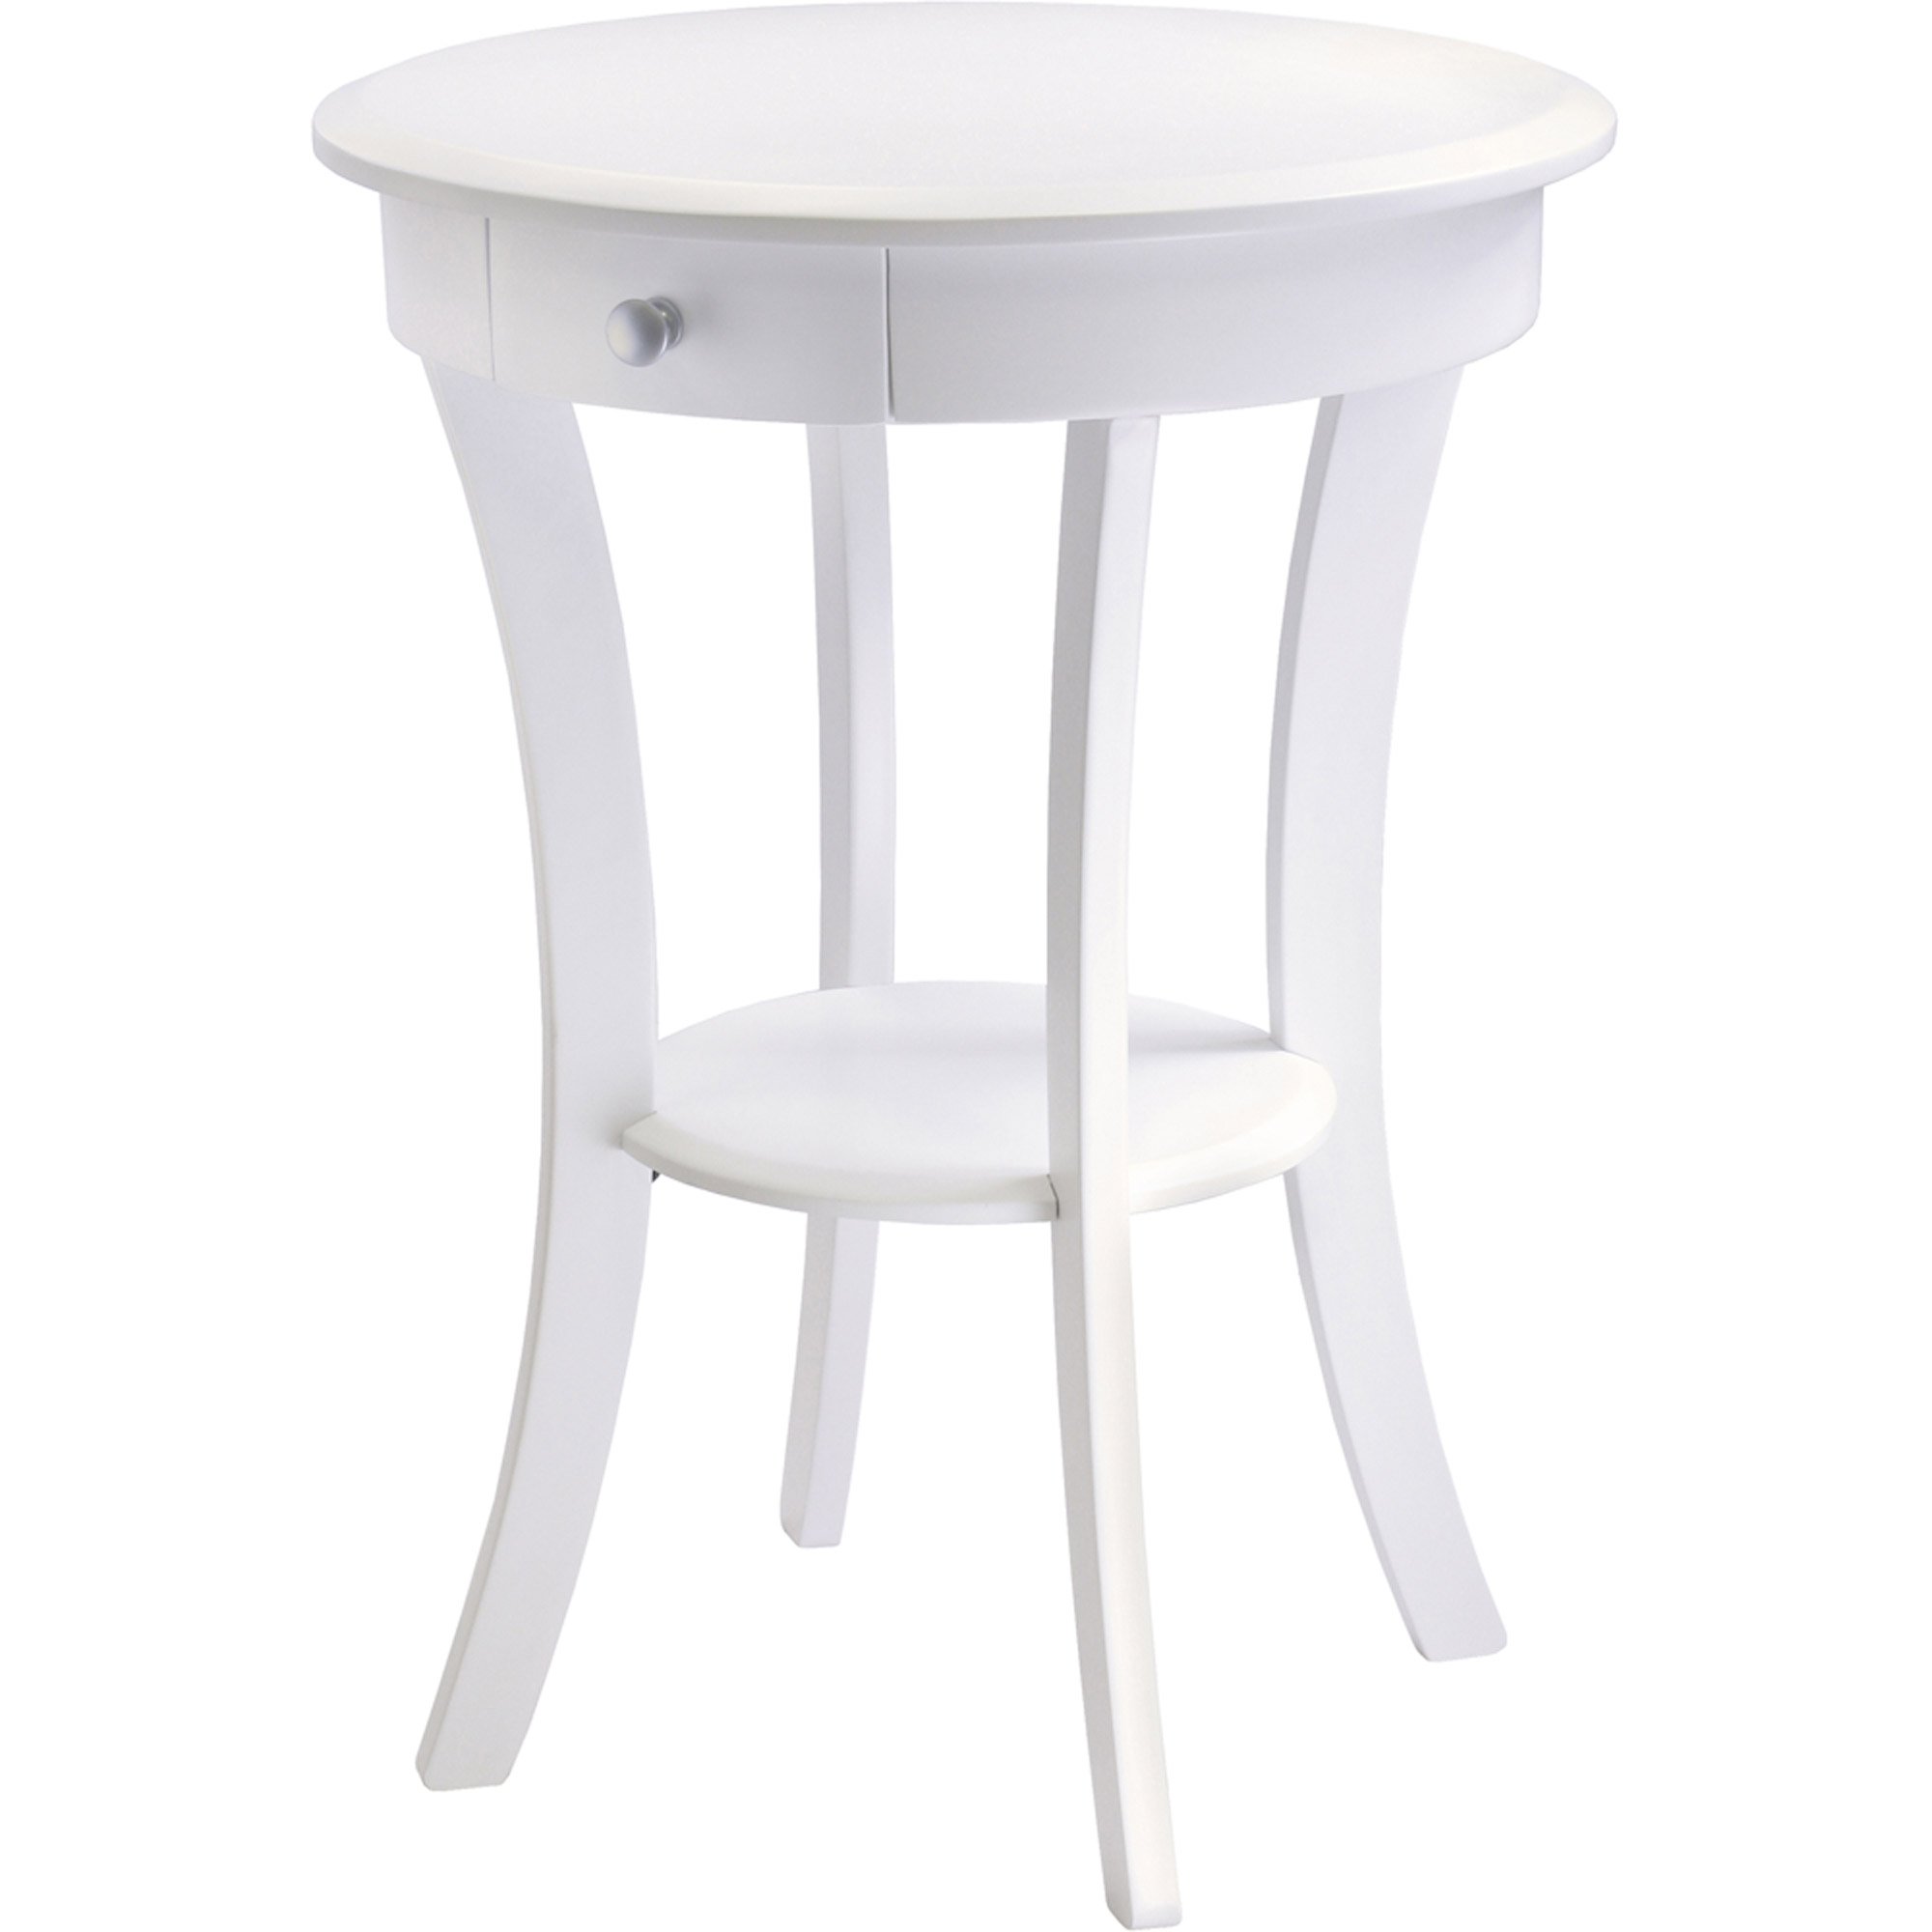 sasha round accent table small white coastal themed lamps narrow cabinet black windsor chairs stein world multi drawer chest gold coffee carsons furniture terence conran made usa